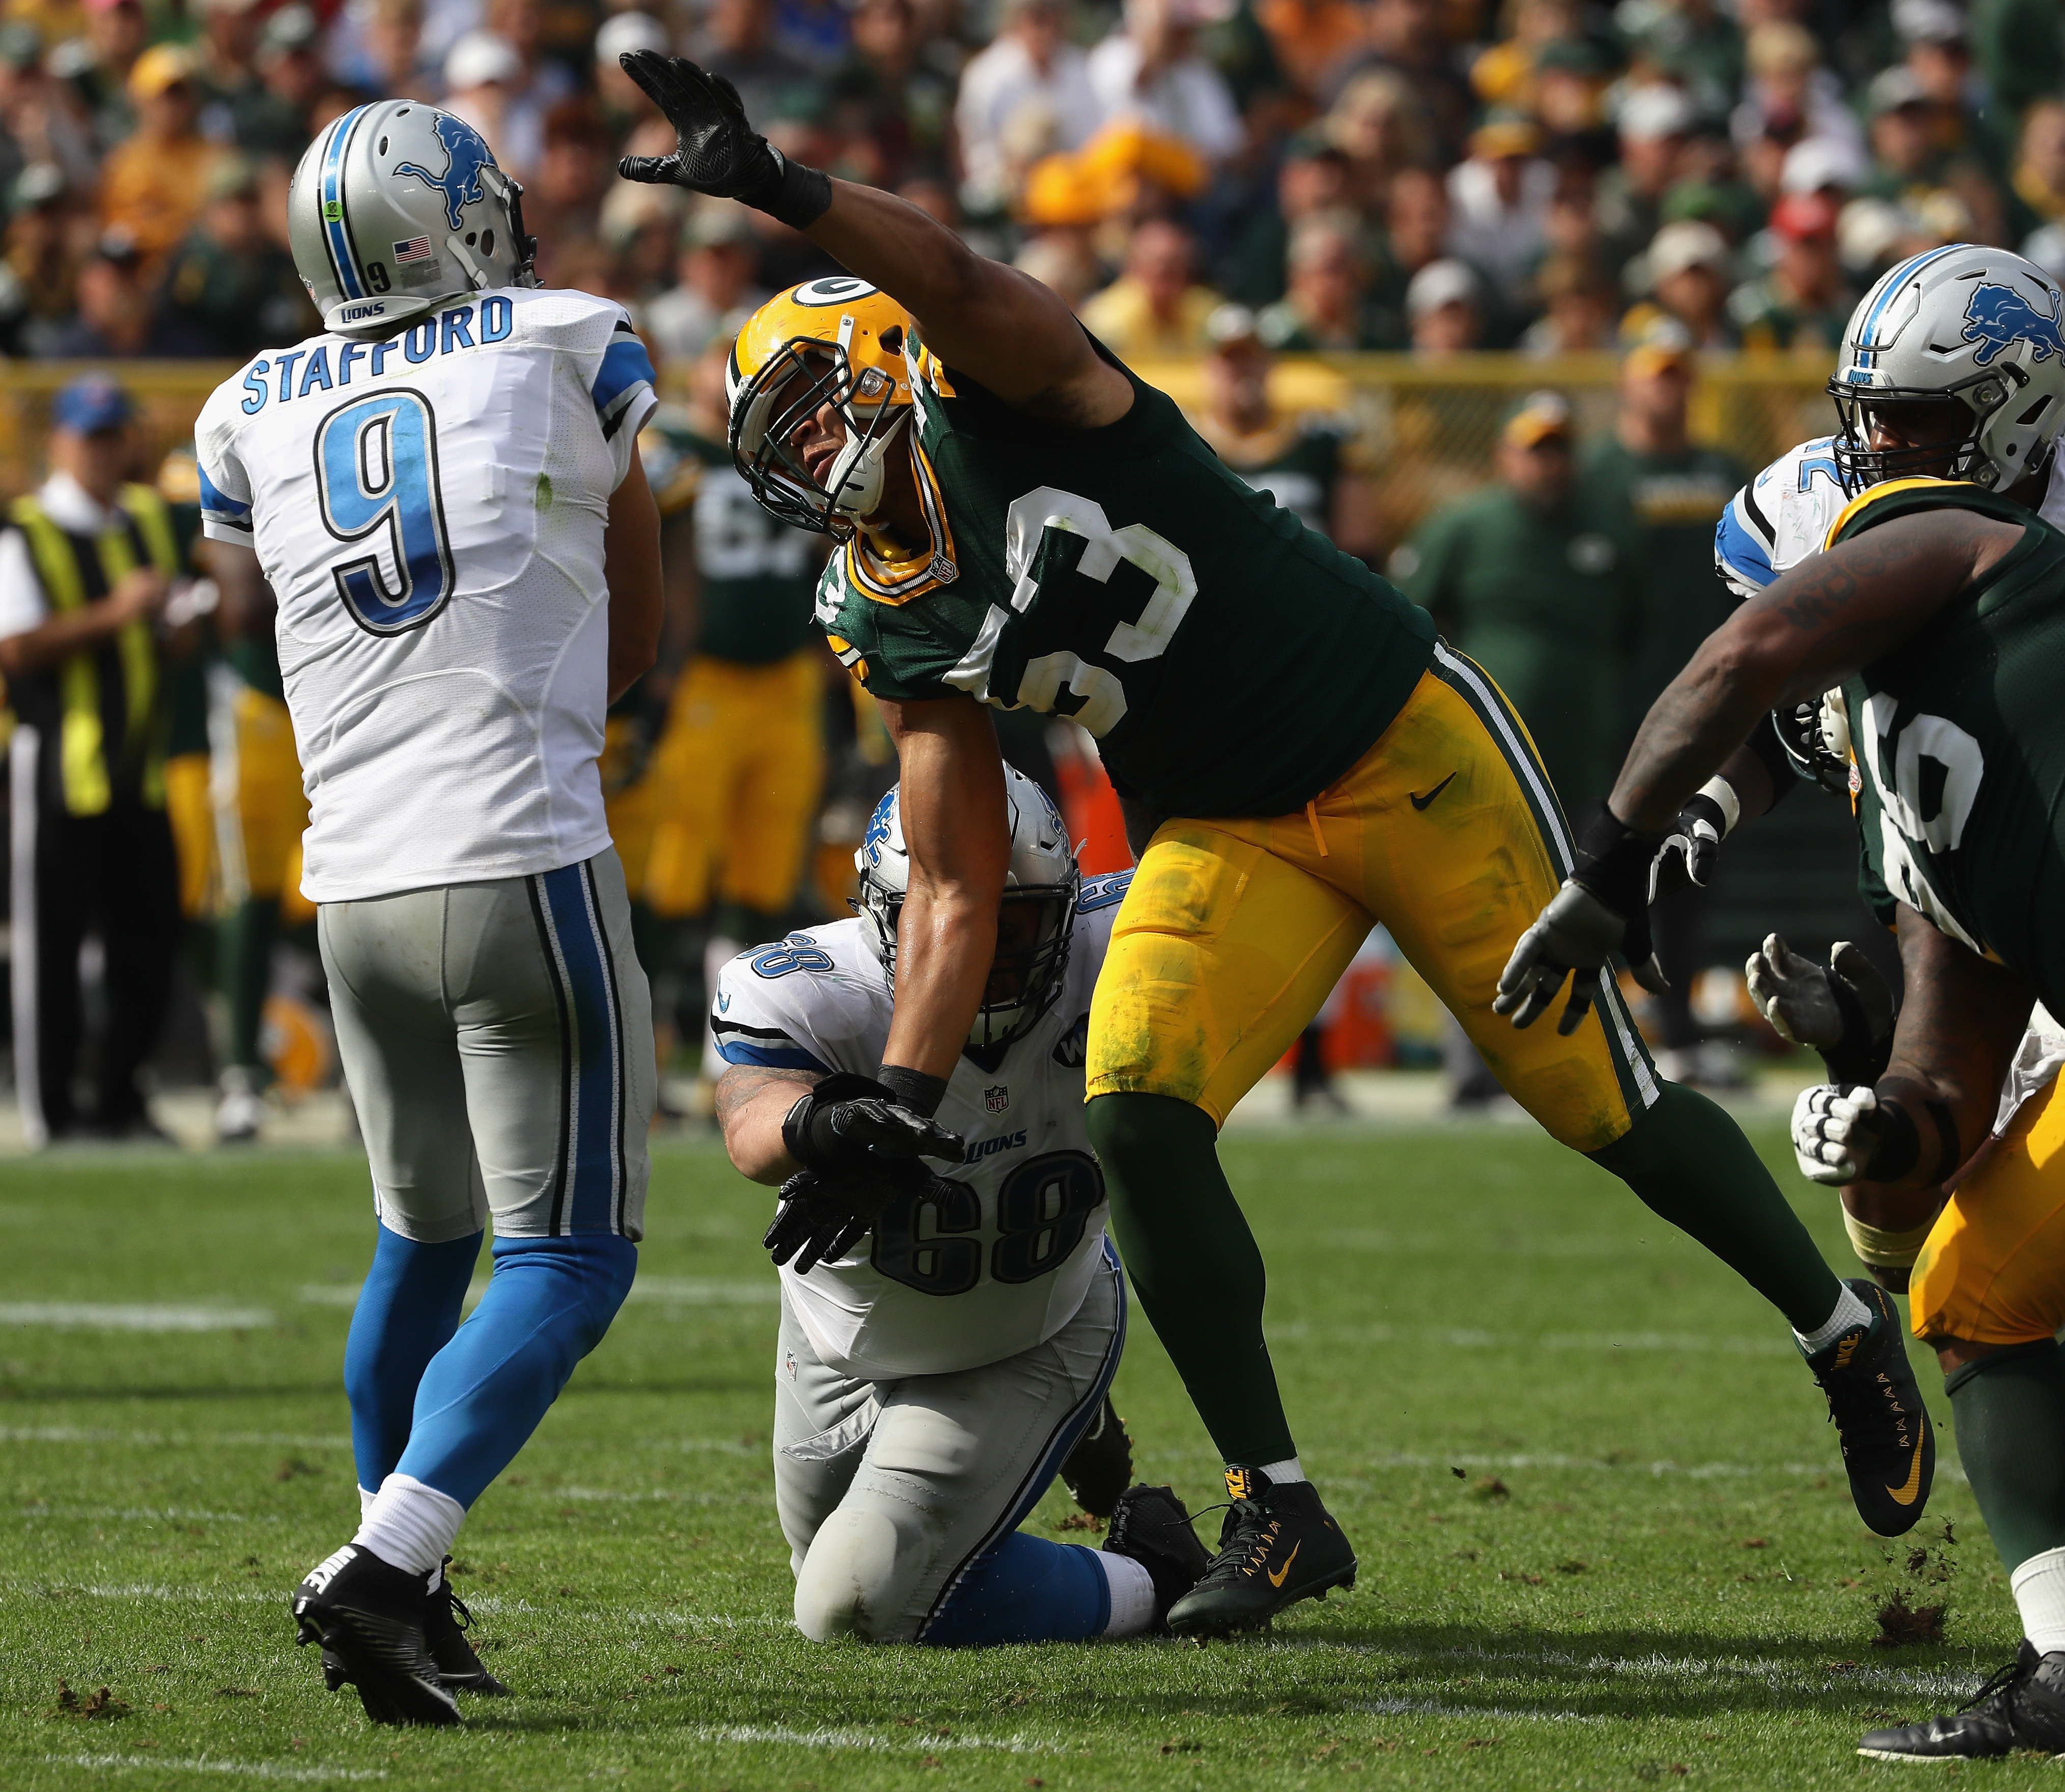 610696594-detroit-lions-v-green-bay-packers.jpg